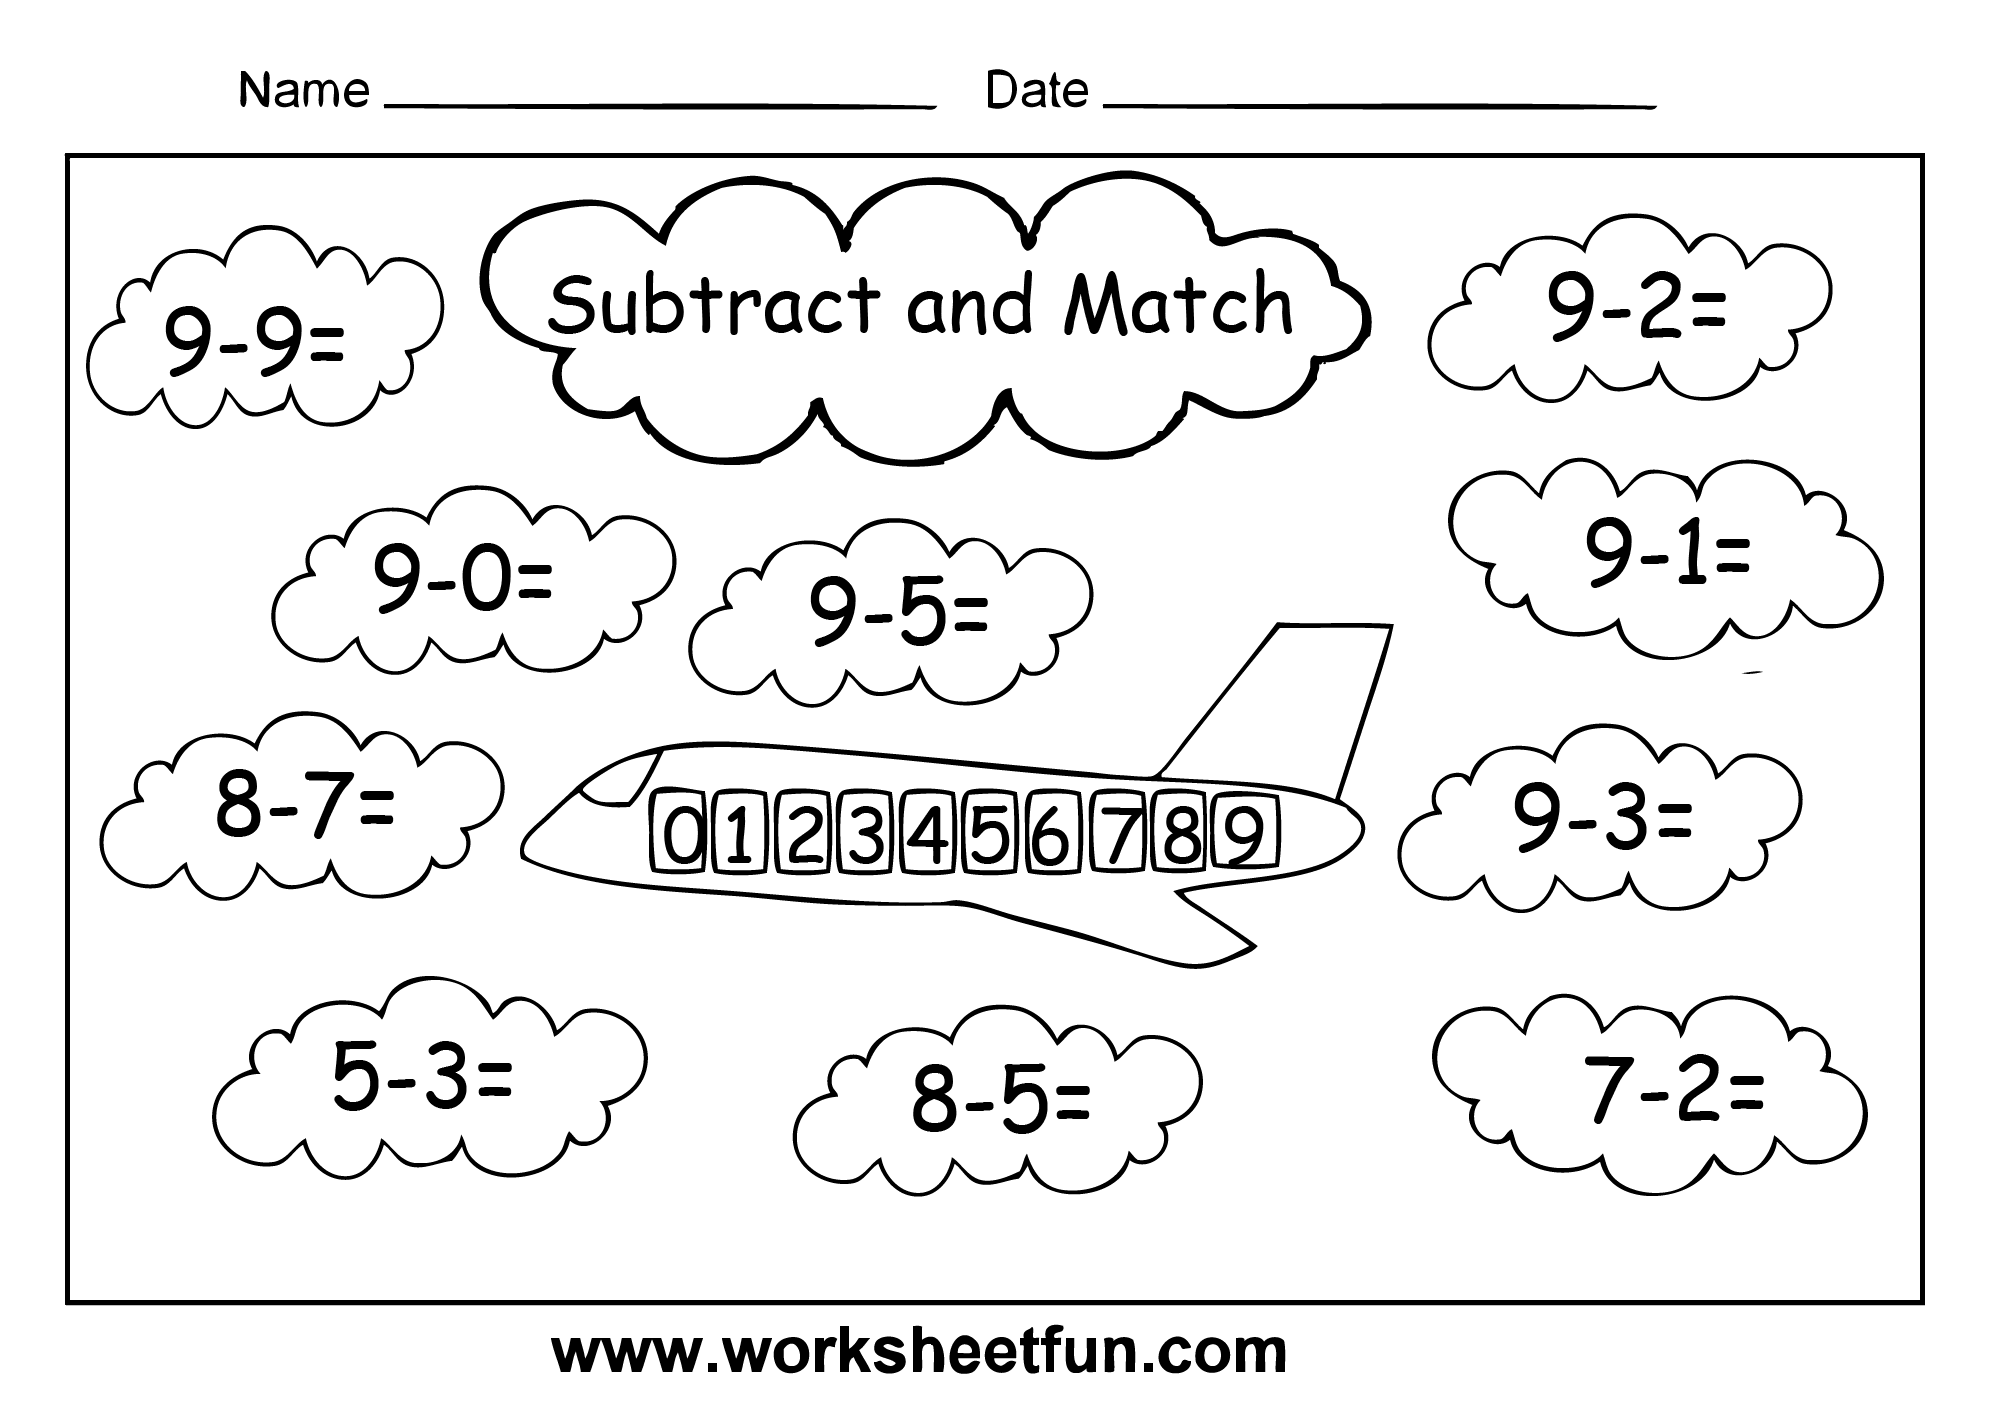 aeroplane cloud subtract and match 1